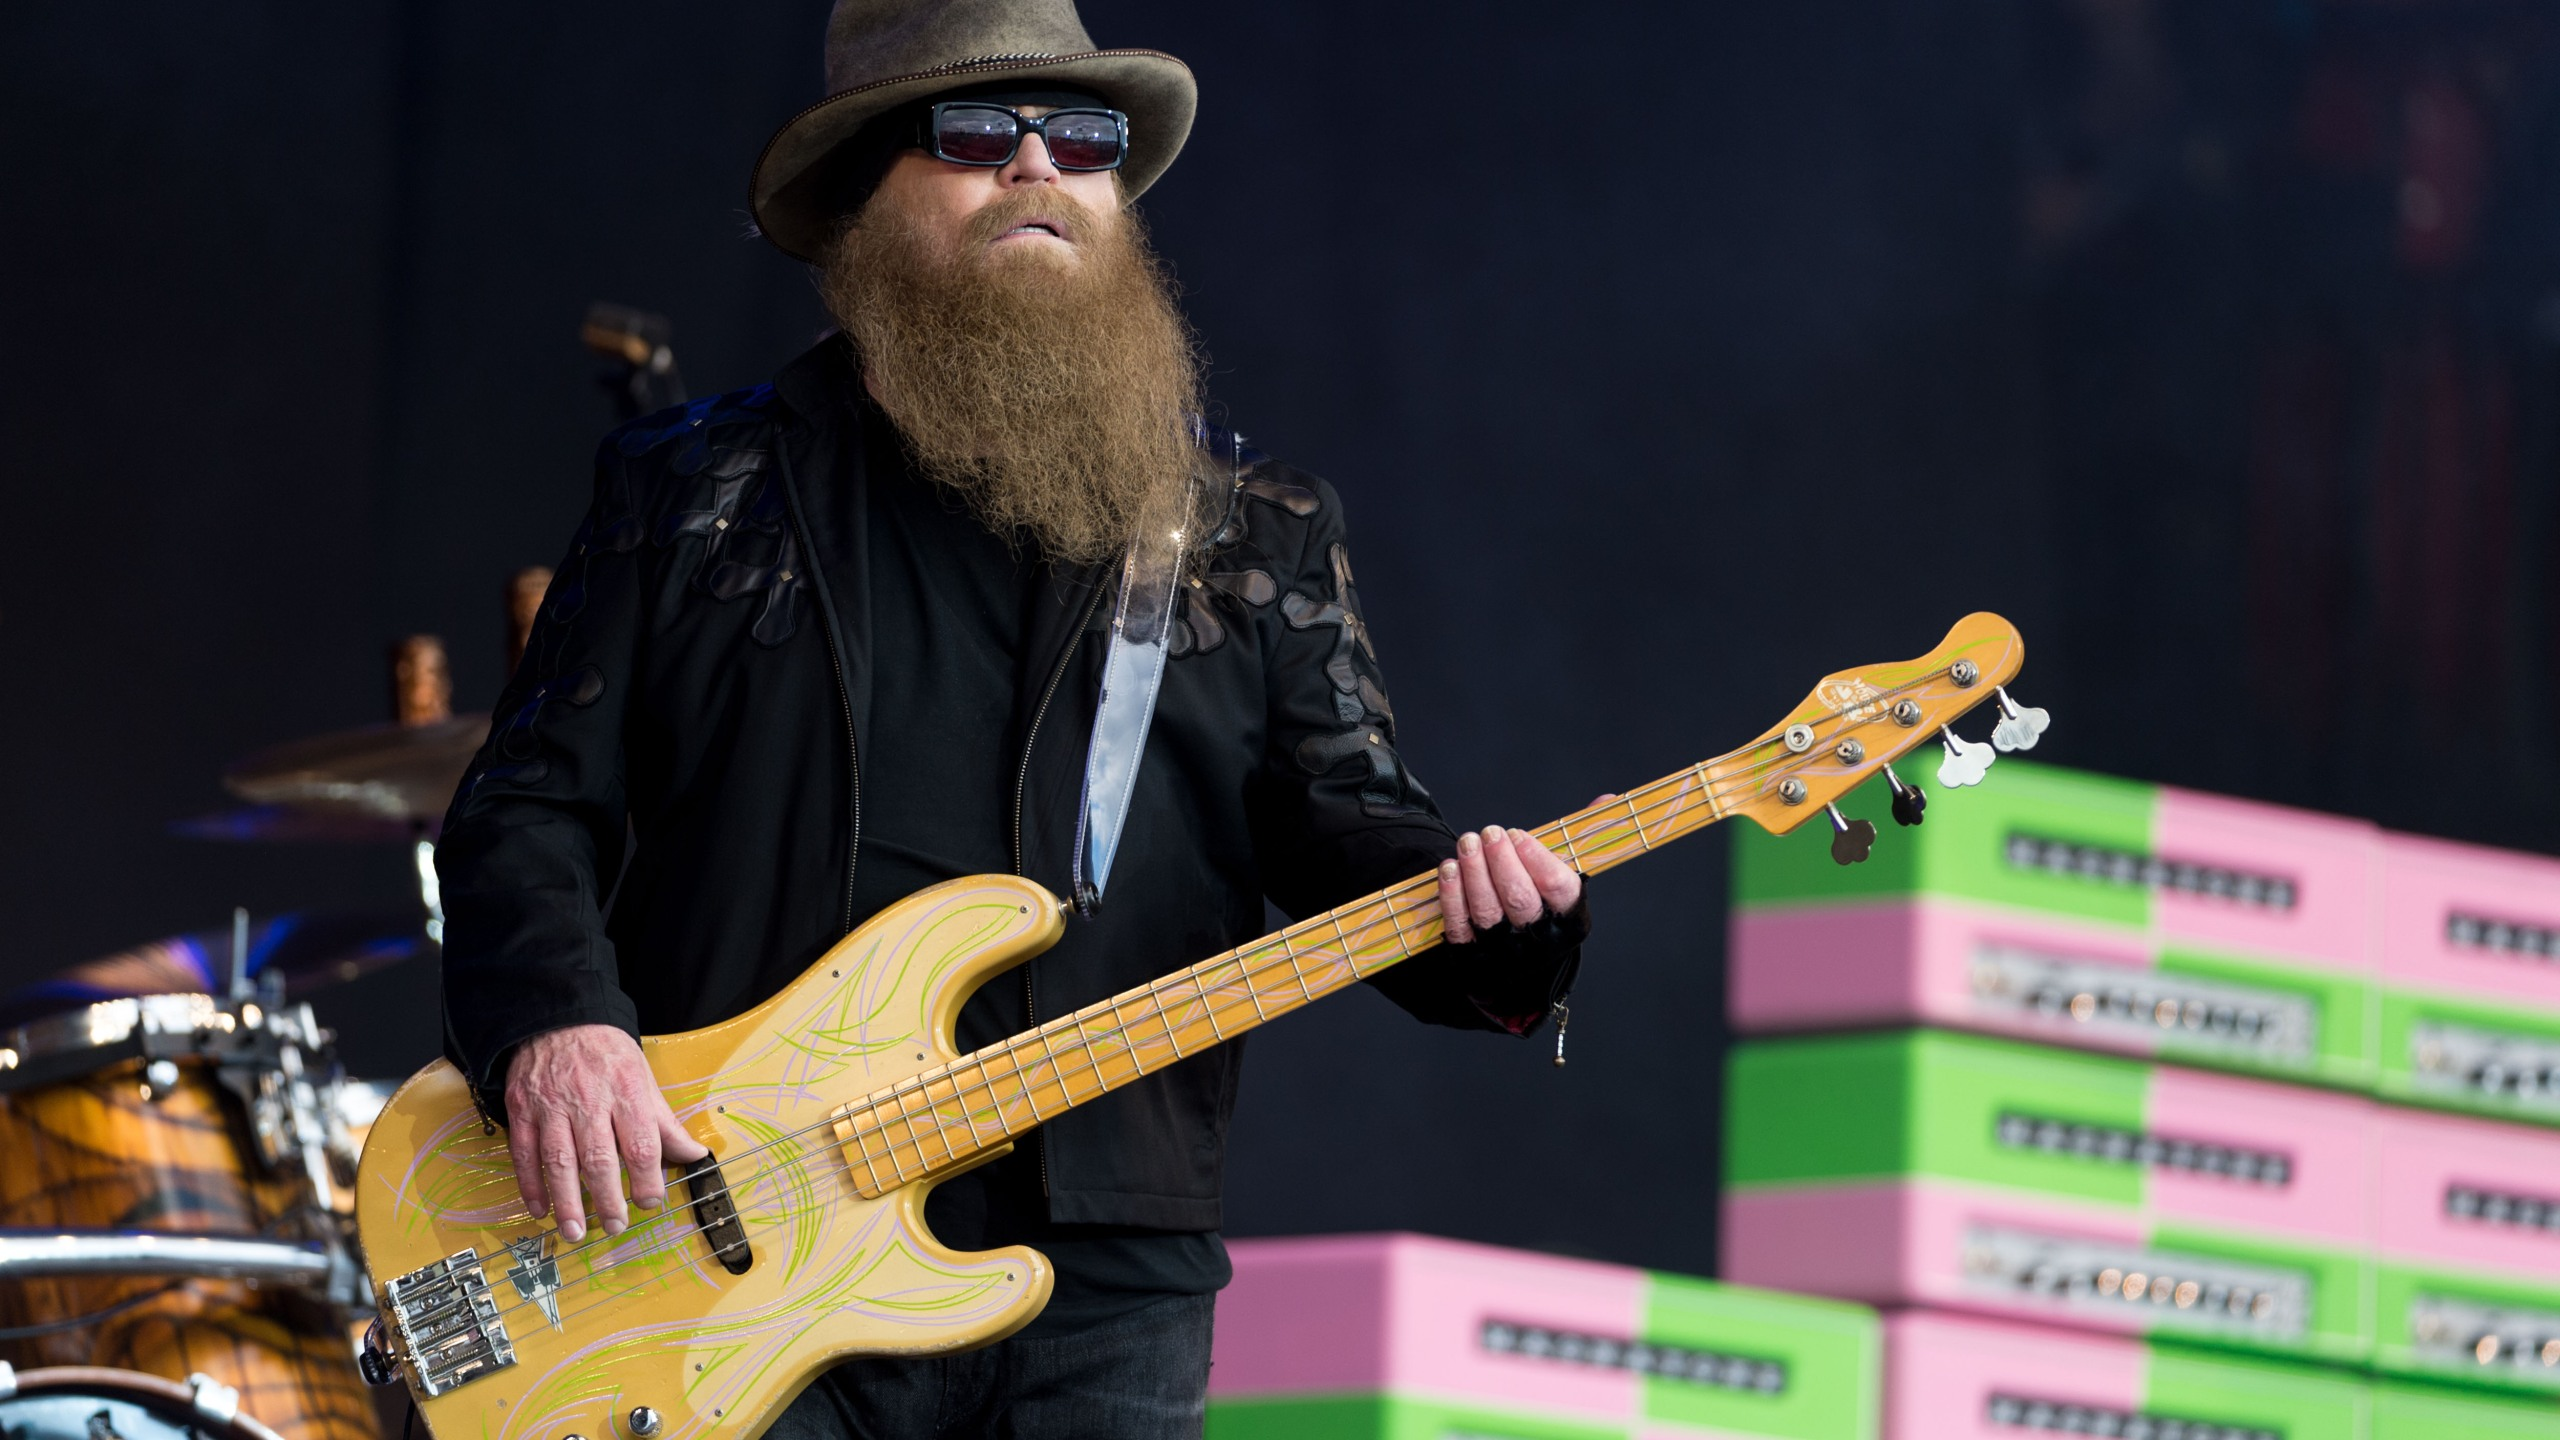 Dusty Hill of ZZ Top performs on the Pyramid Stage during the Glastonbury Festival at Worthy Farm, Pilton on June 24, 2016 in Glastonbury, England. (Ian Gavan/Getty Images)